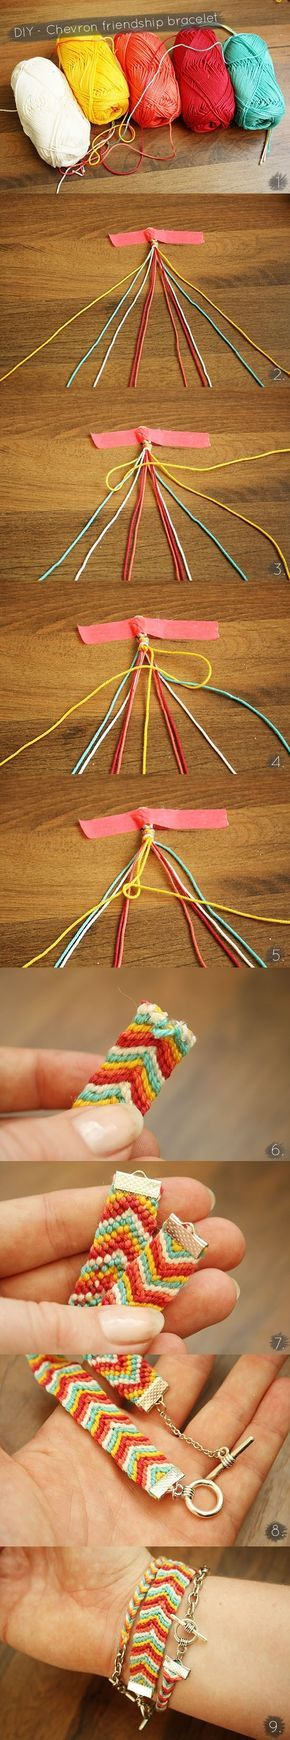 I remember making tons of these in elementary school! But we tied knots and didn't have fancy clasps. Good reminder of how!